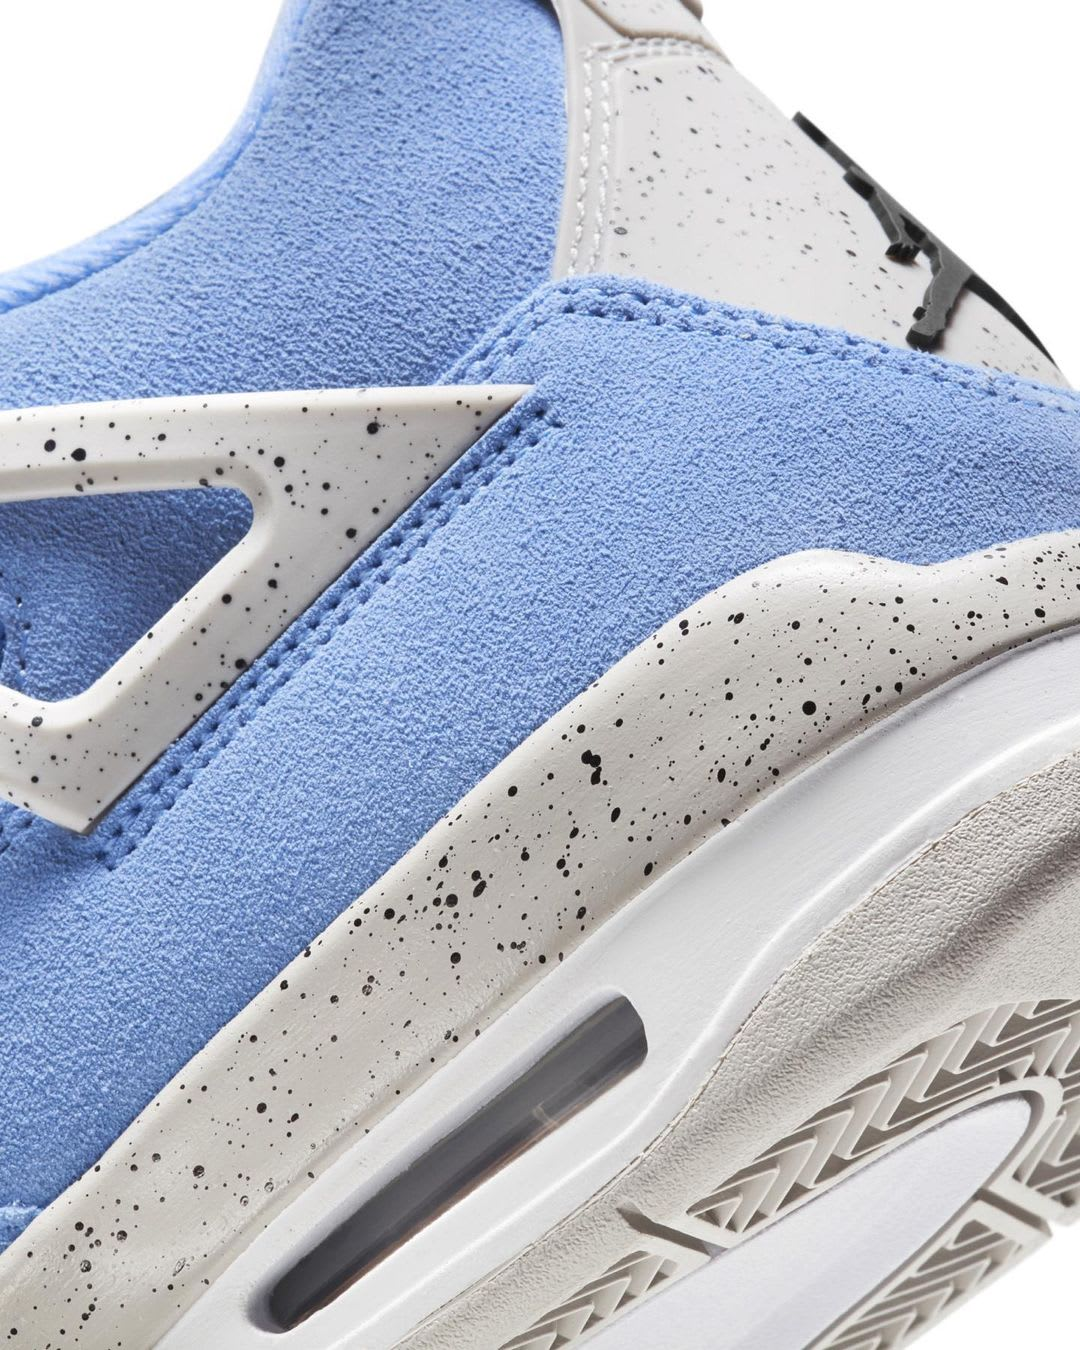 Air Jordan 4 Retro 'University Blue' CT8527-400 Heel